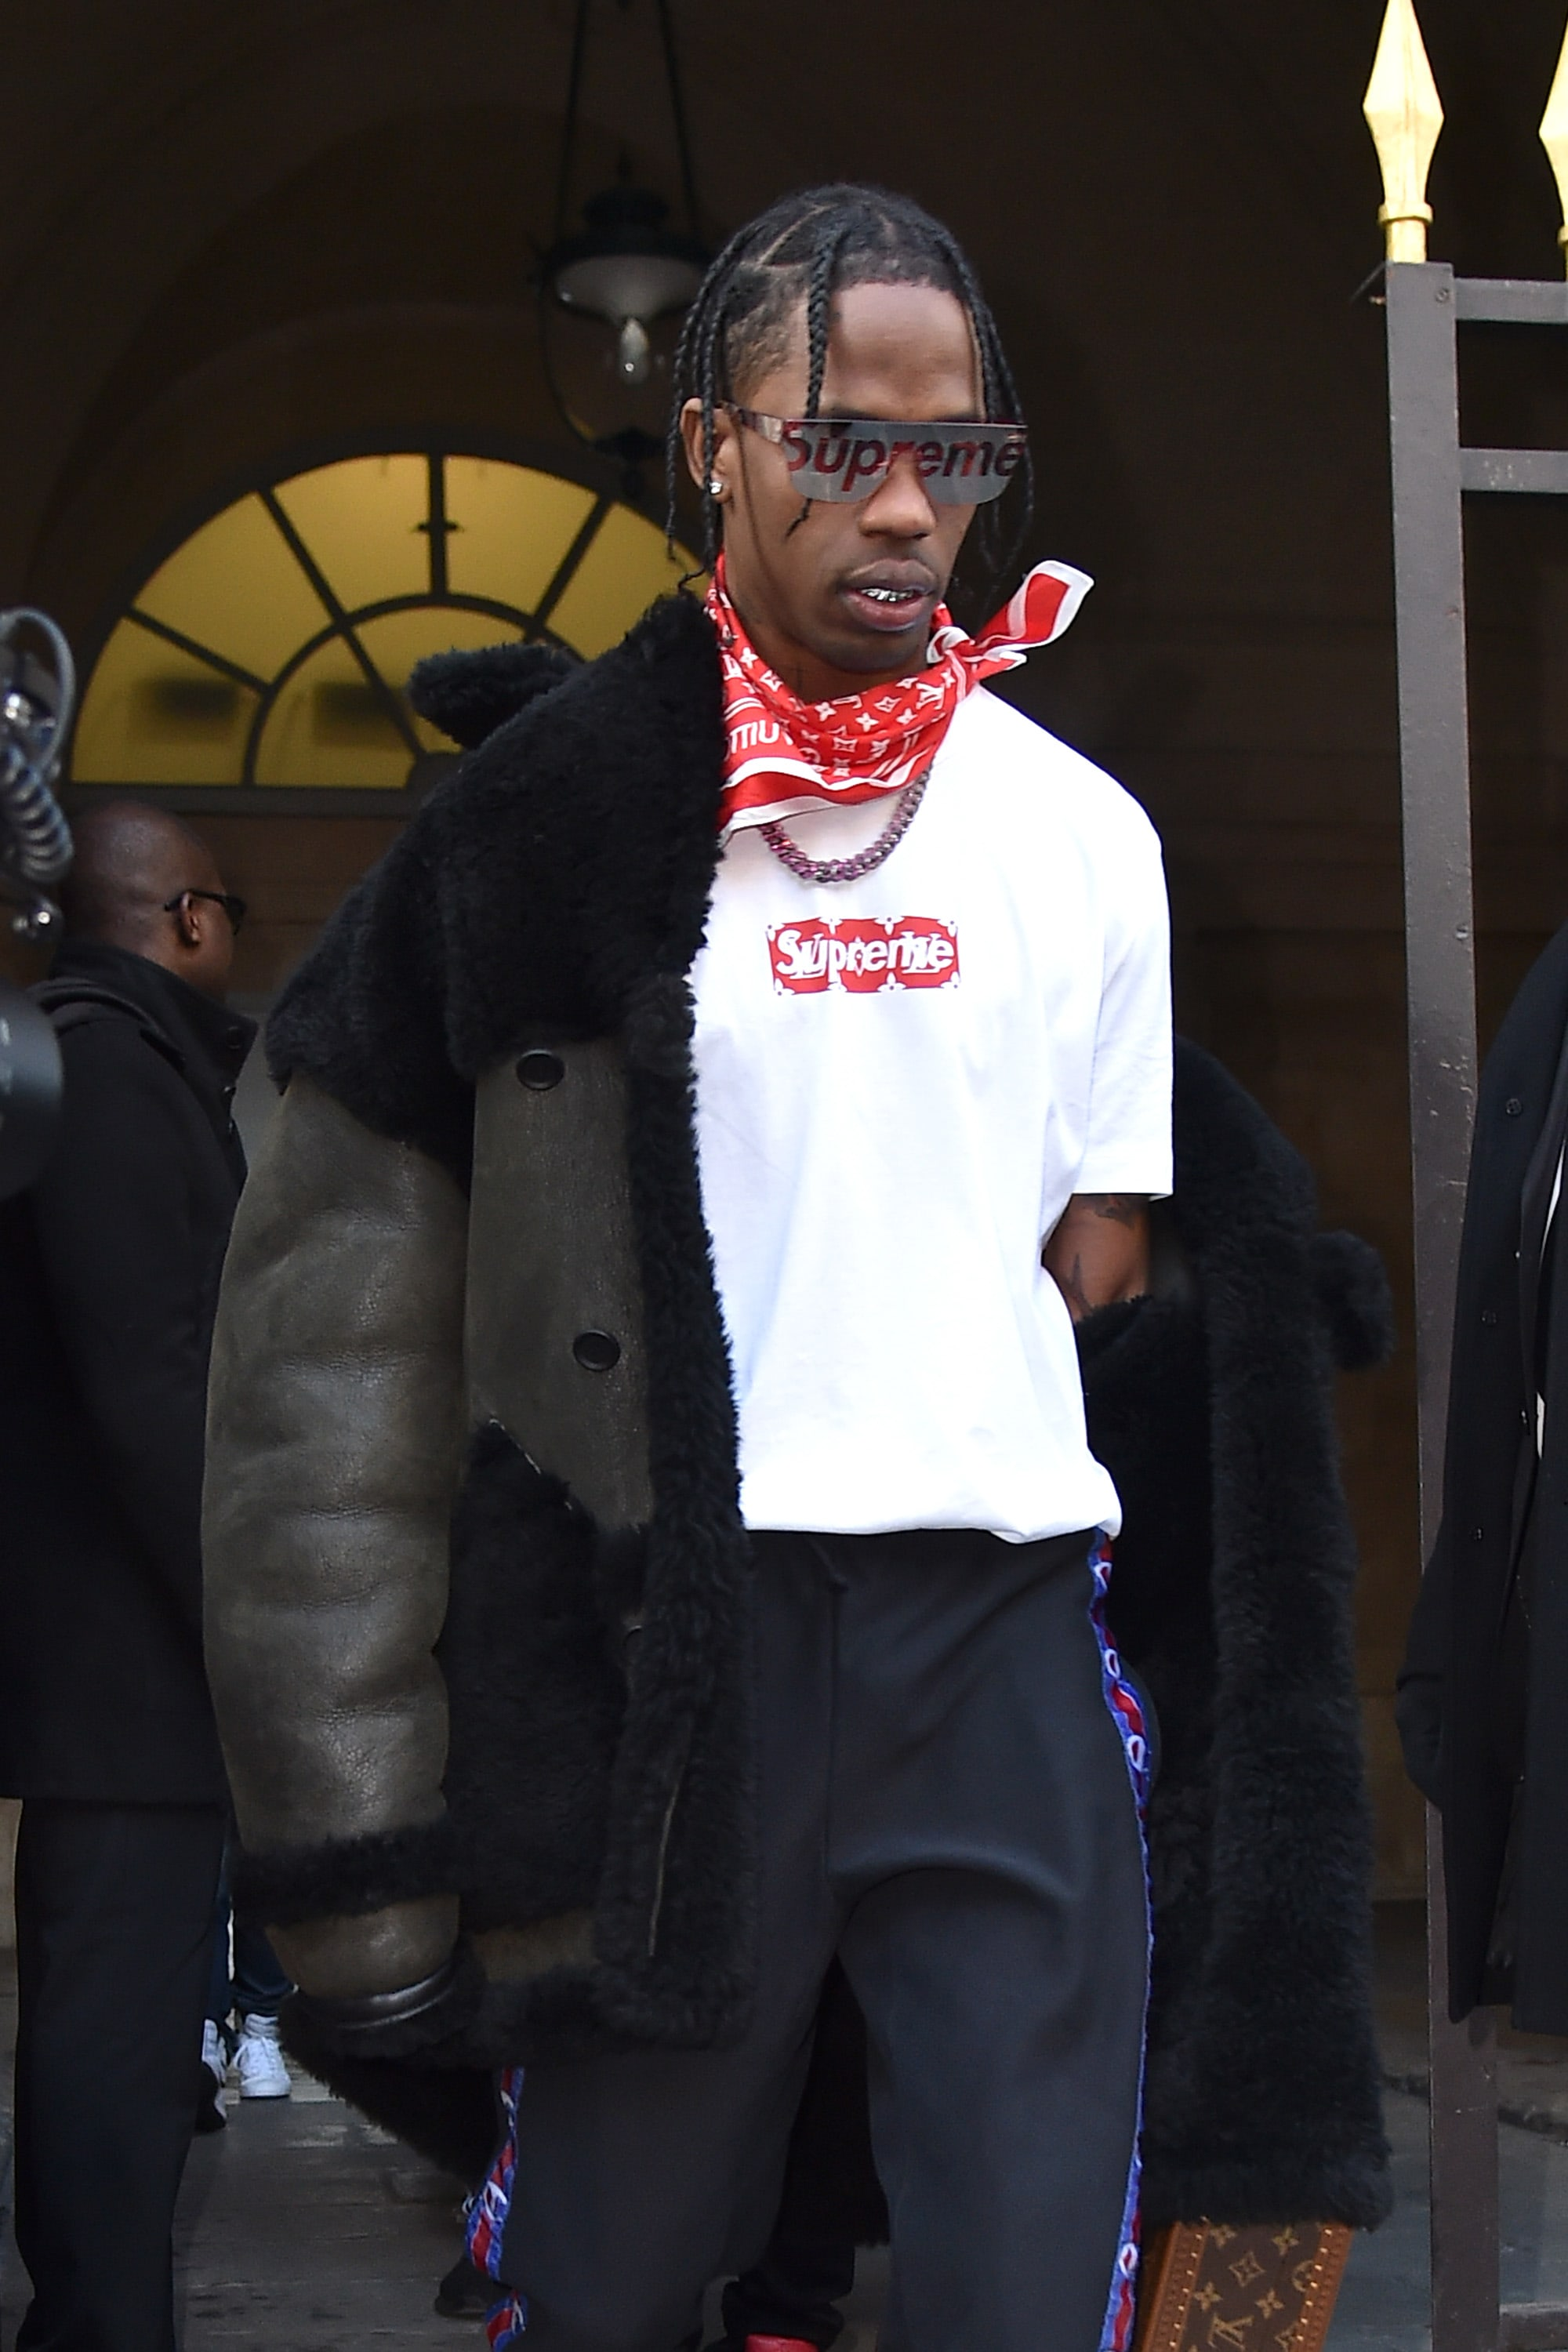 Travis Scott in Supreme x Louis Vuitton